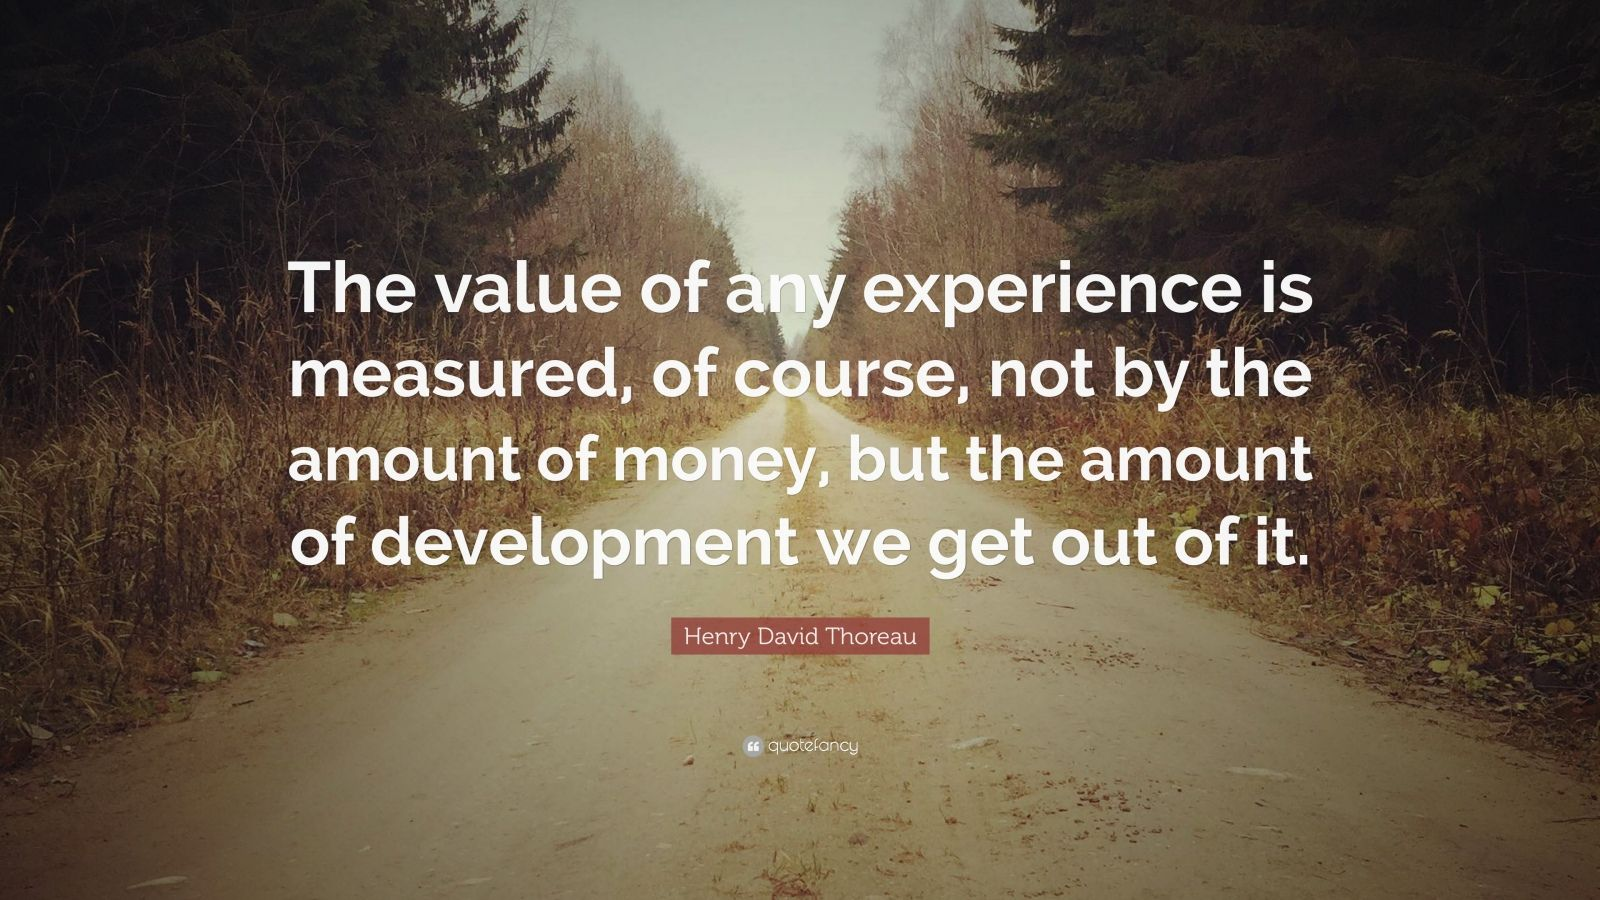 """Henry David Thoreau Quote: """"The value of any experience is measured, of course, not by the amount of money, but the amount of development we get out of it."""""""